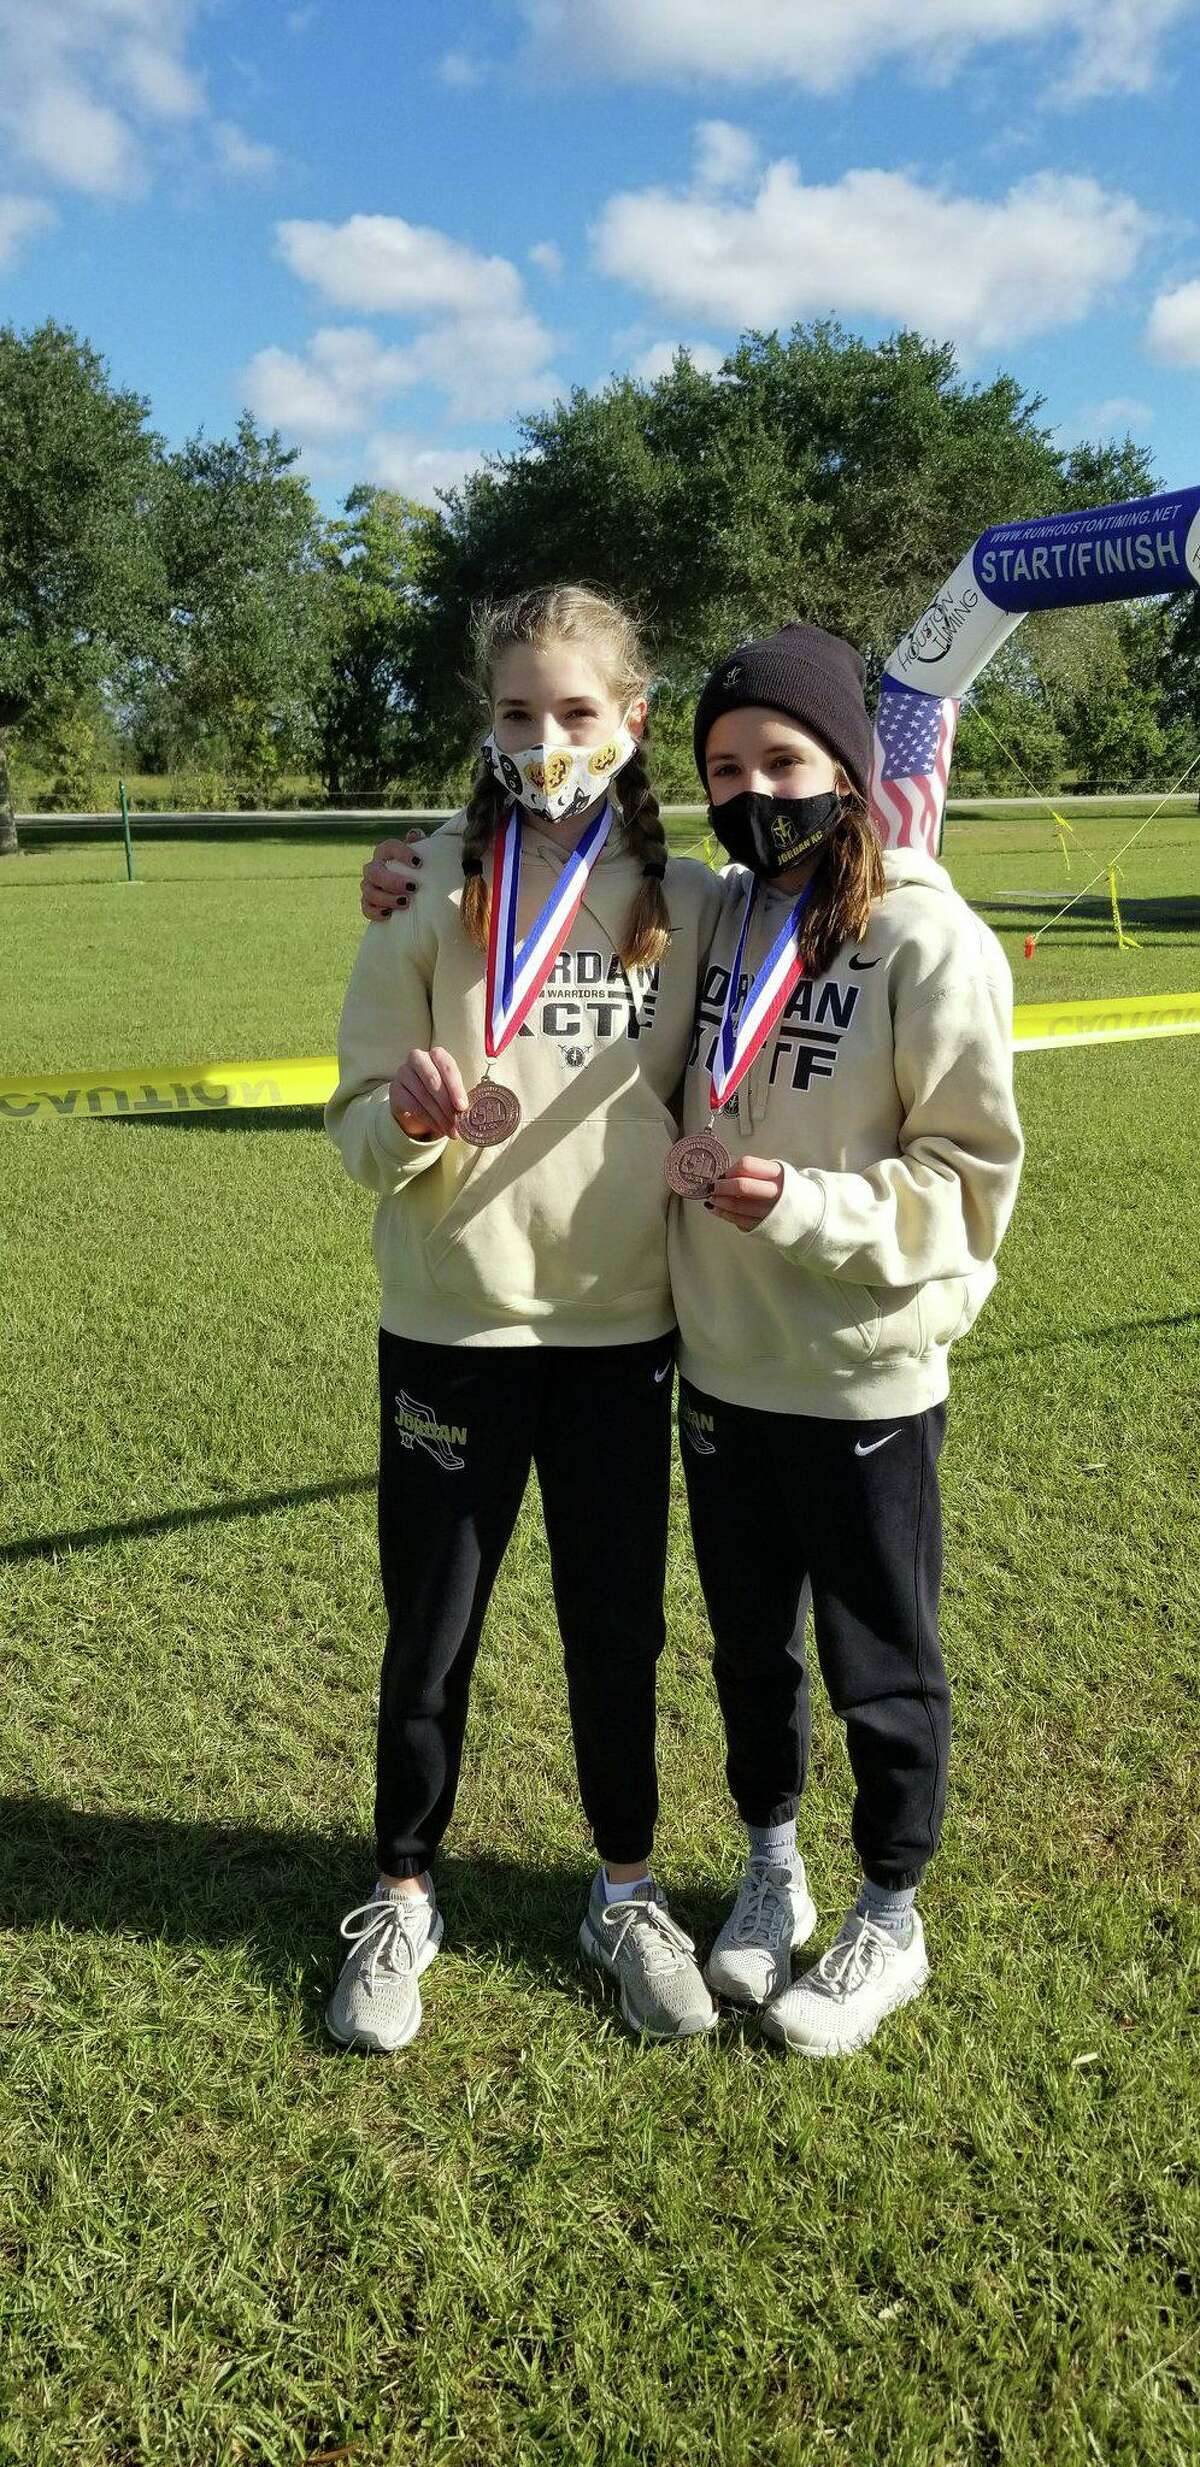 Jordan High School qualified its first runners for the Region III championships, as Addison Sutton and Beatriz Laepple finished among the top 10 runners at the District 19-5A championships.